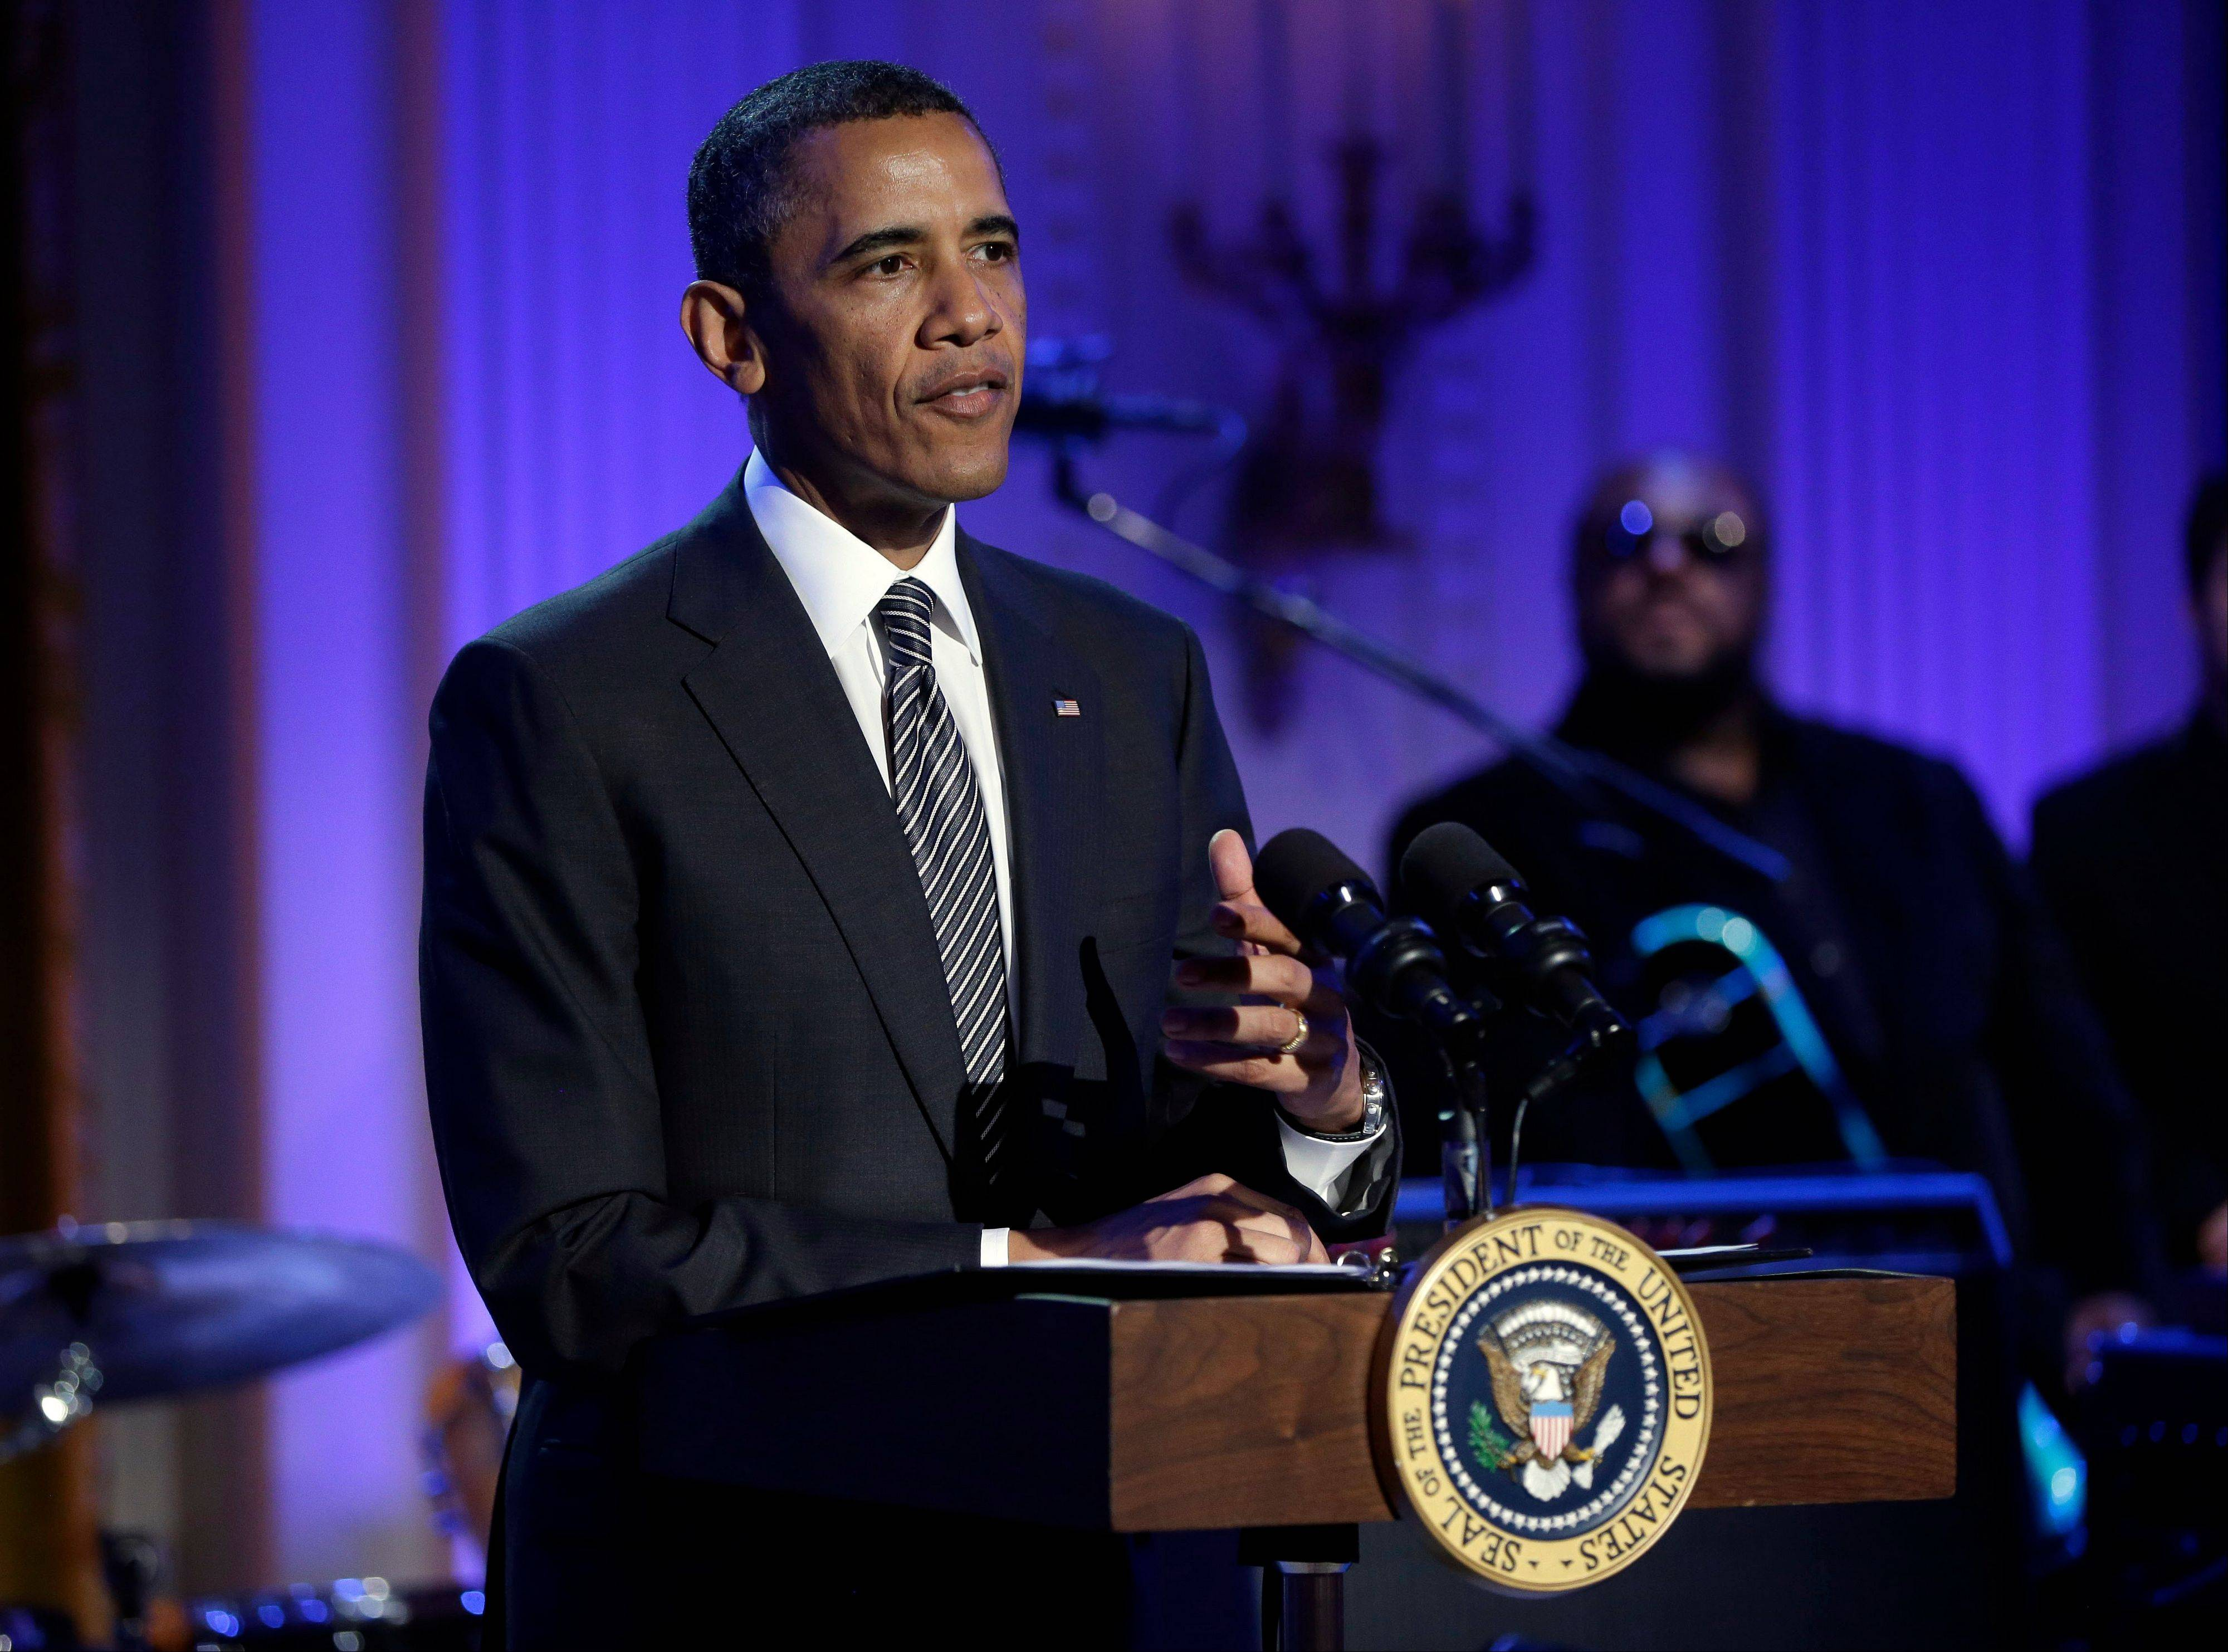 President Barack Obama speaks during the �In Performance at the White House� in the East Room of the White House in Washington, Tuesday, April 9, 2013, a program for a celebration of Memphis Soul Music.